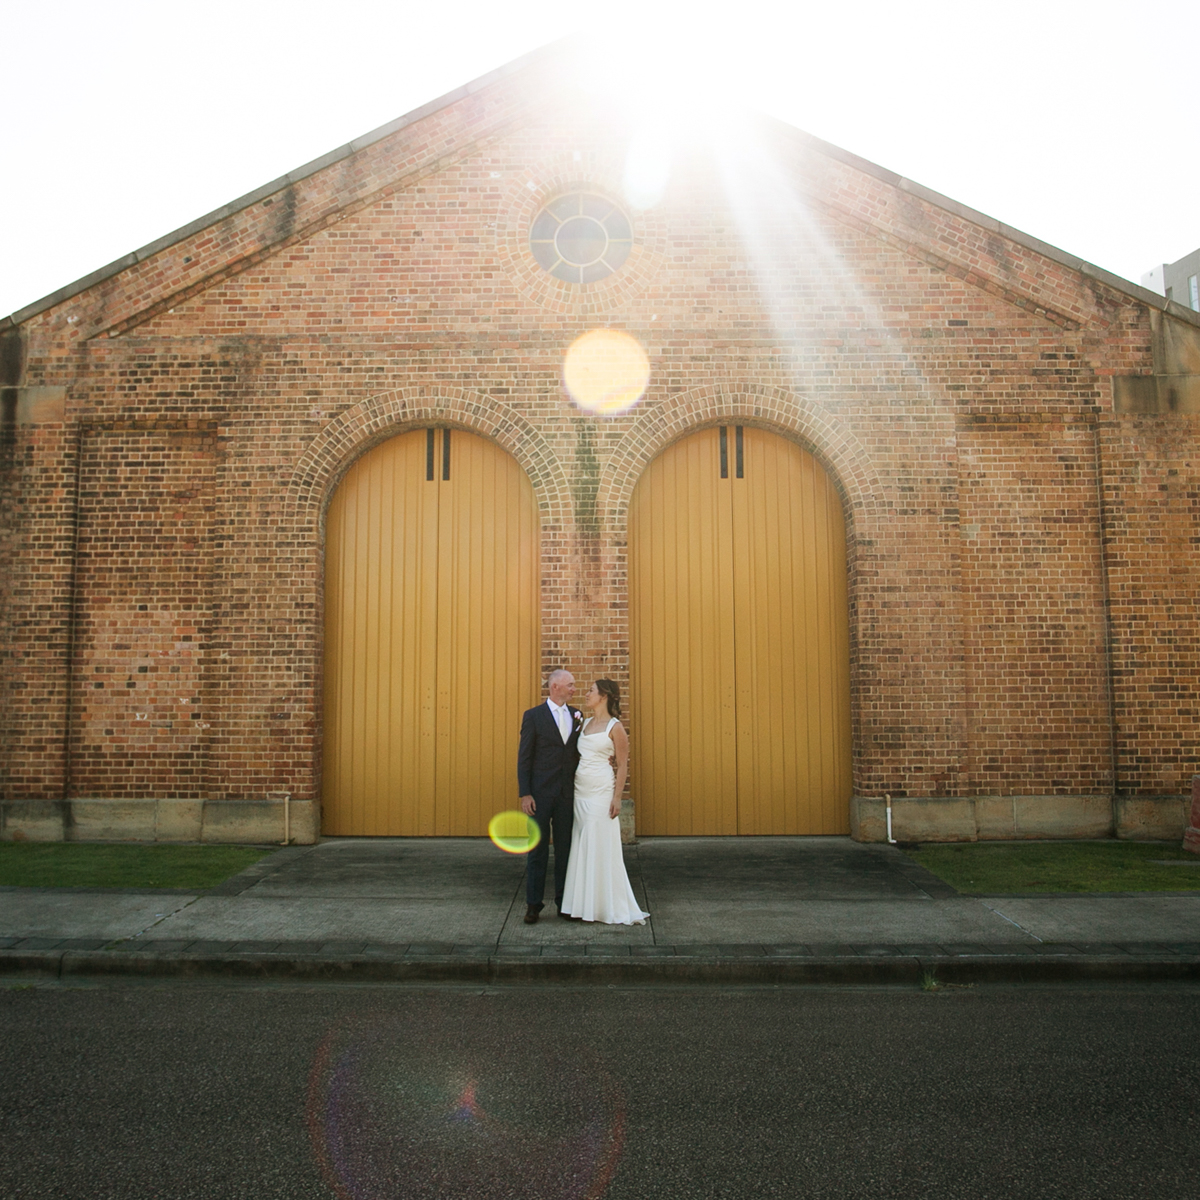 14_newcastle wedding photographer with bride and groom at train sheds in honeysuckle